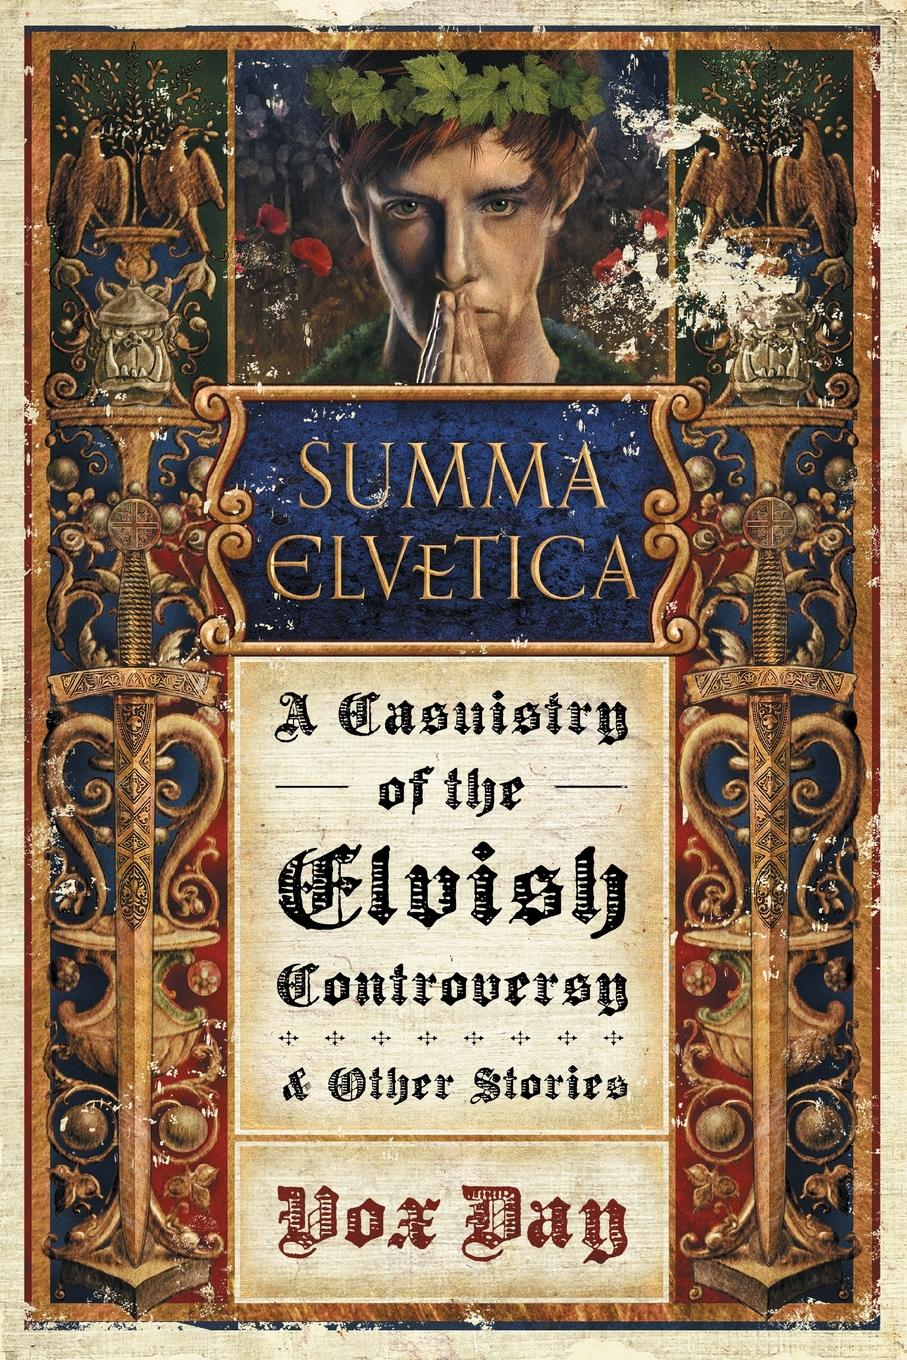 Vox Day Summa Elvetica. A Casuistry of the Elvish Controversy